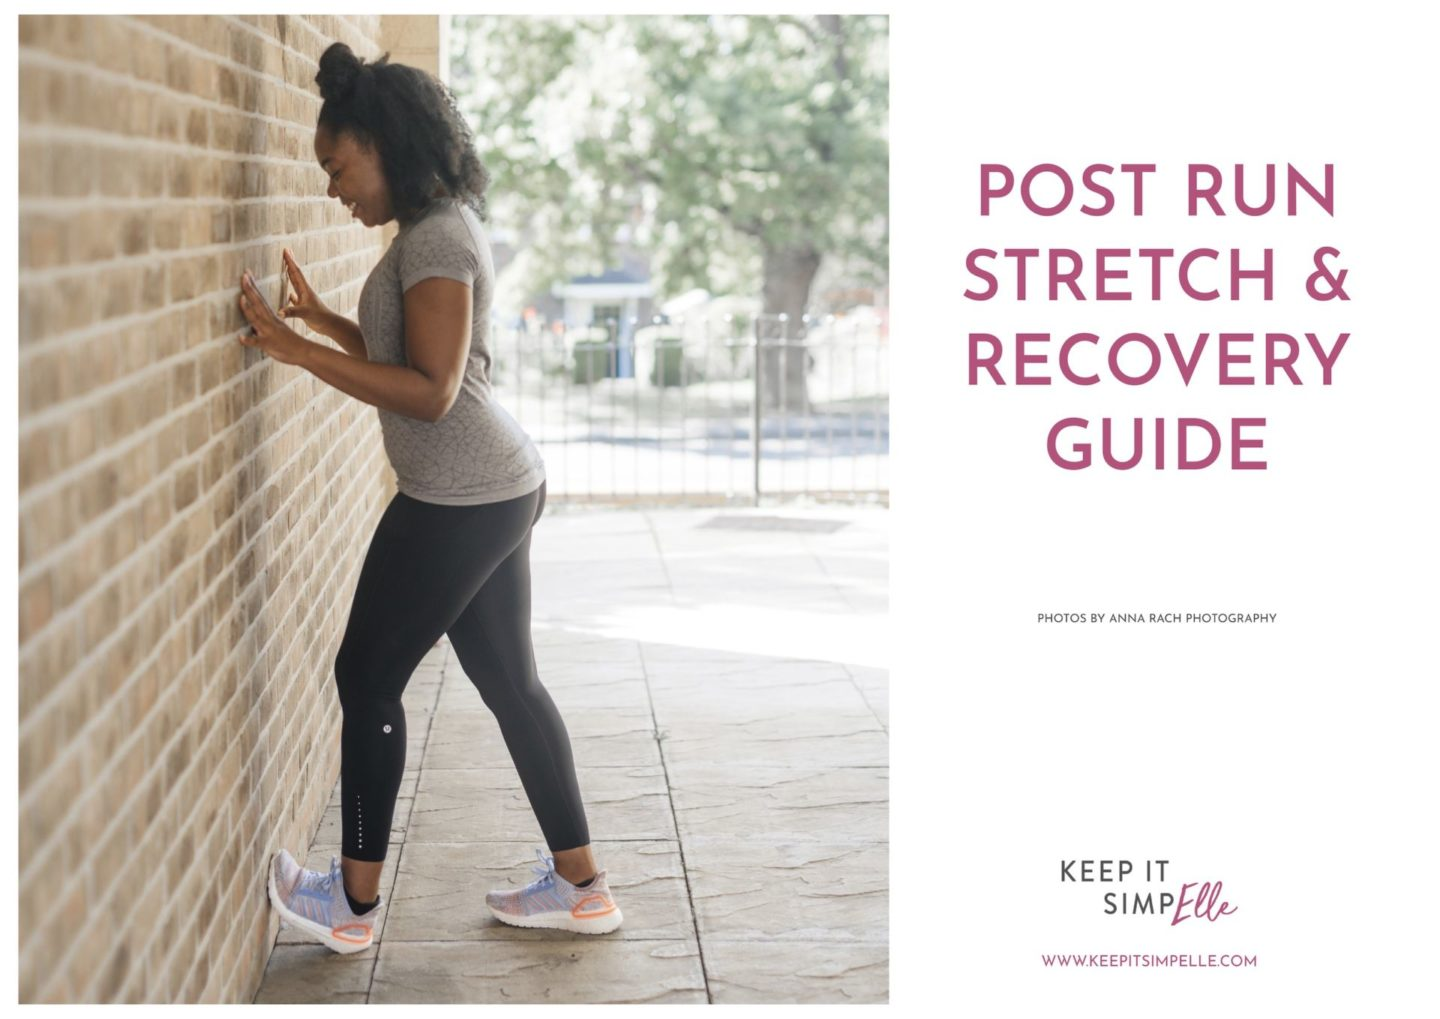 The Post Run Stretch & Recovery Guide